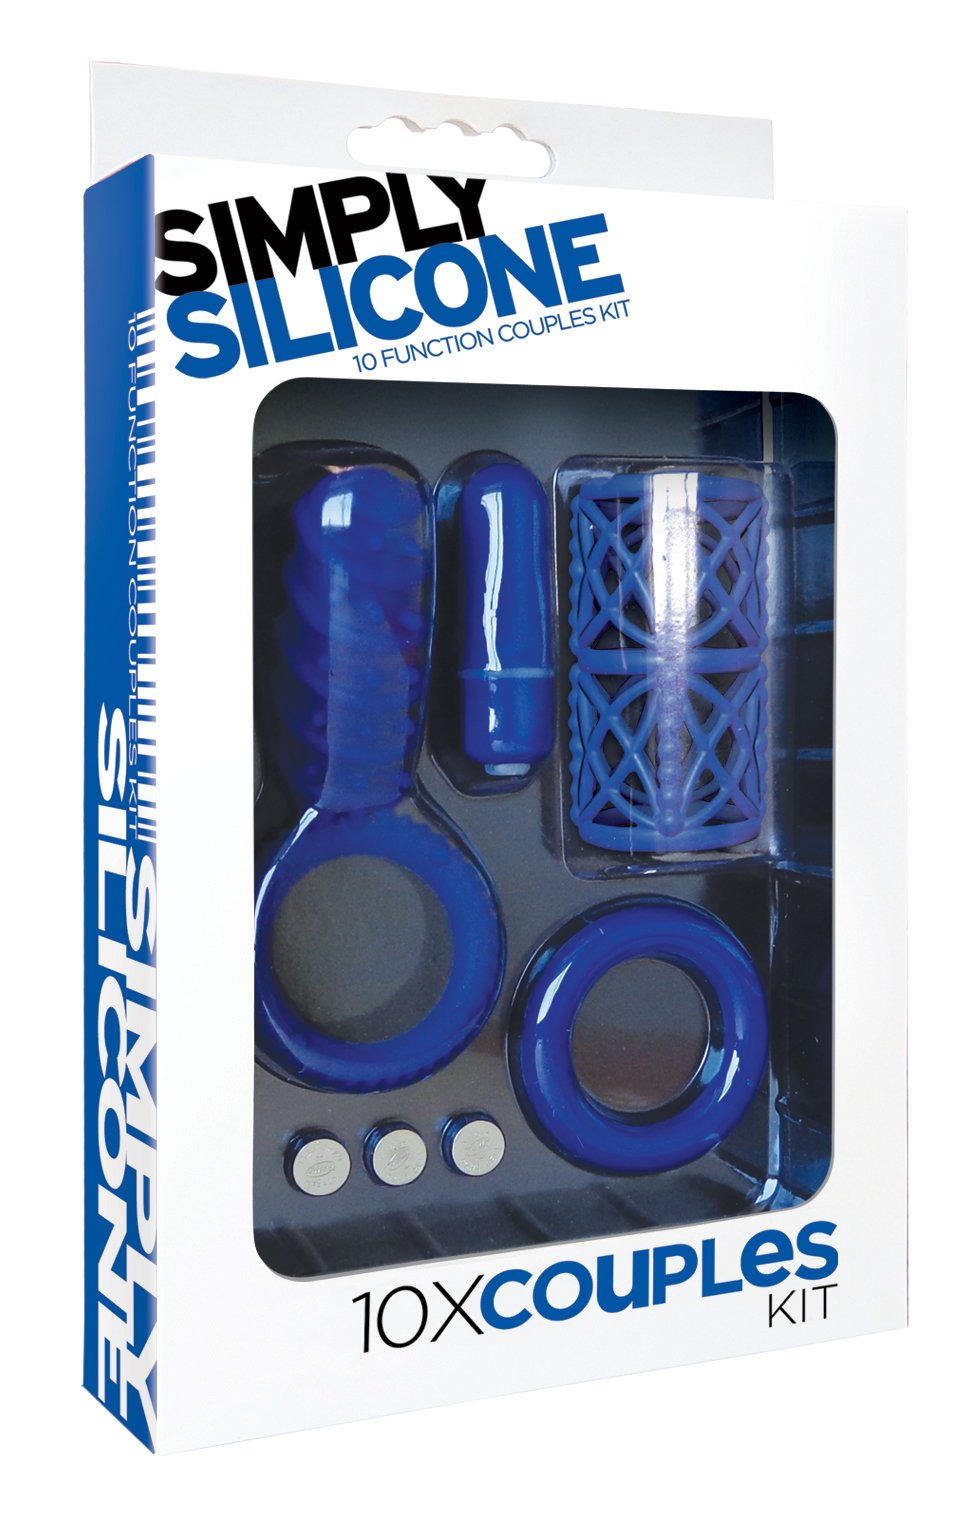 Icon Brands Simply Silicone 10X Couples Kit